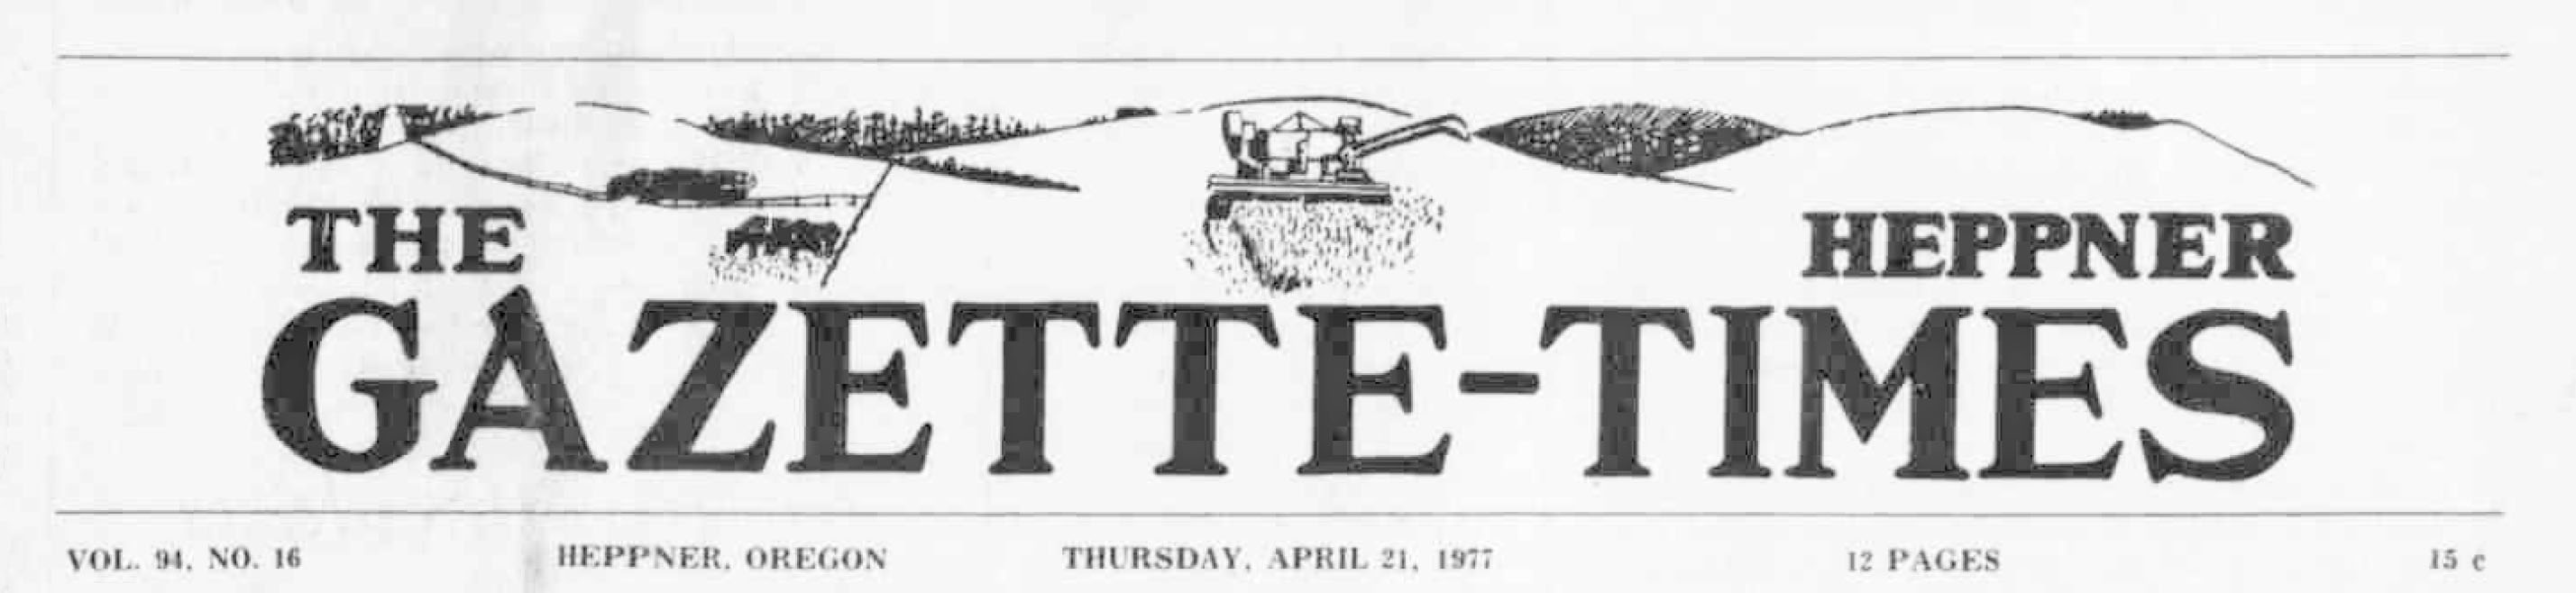 Heppner gazette-times. (Heppner, Or.) April 21, 1977. Image 1. http://oregonnews.uoregon.edu/lccn/sn97071042/1977-04-21/ed-1/seq-1/